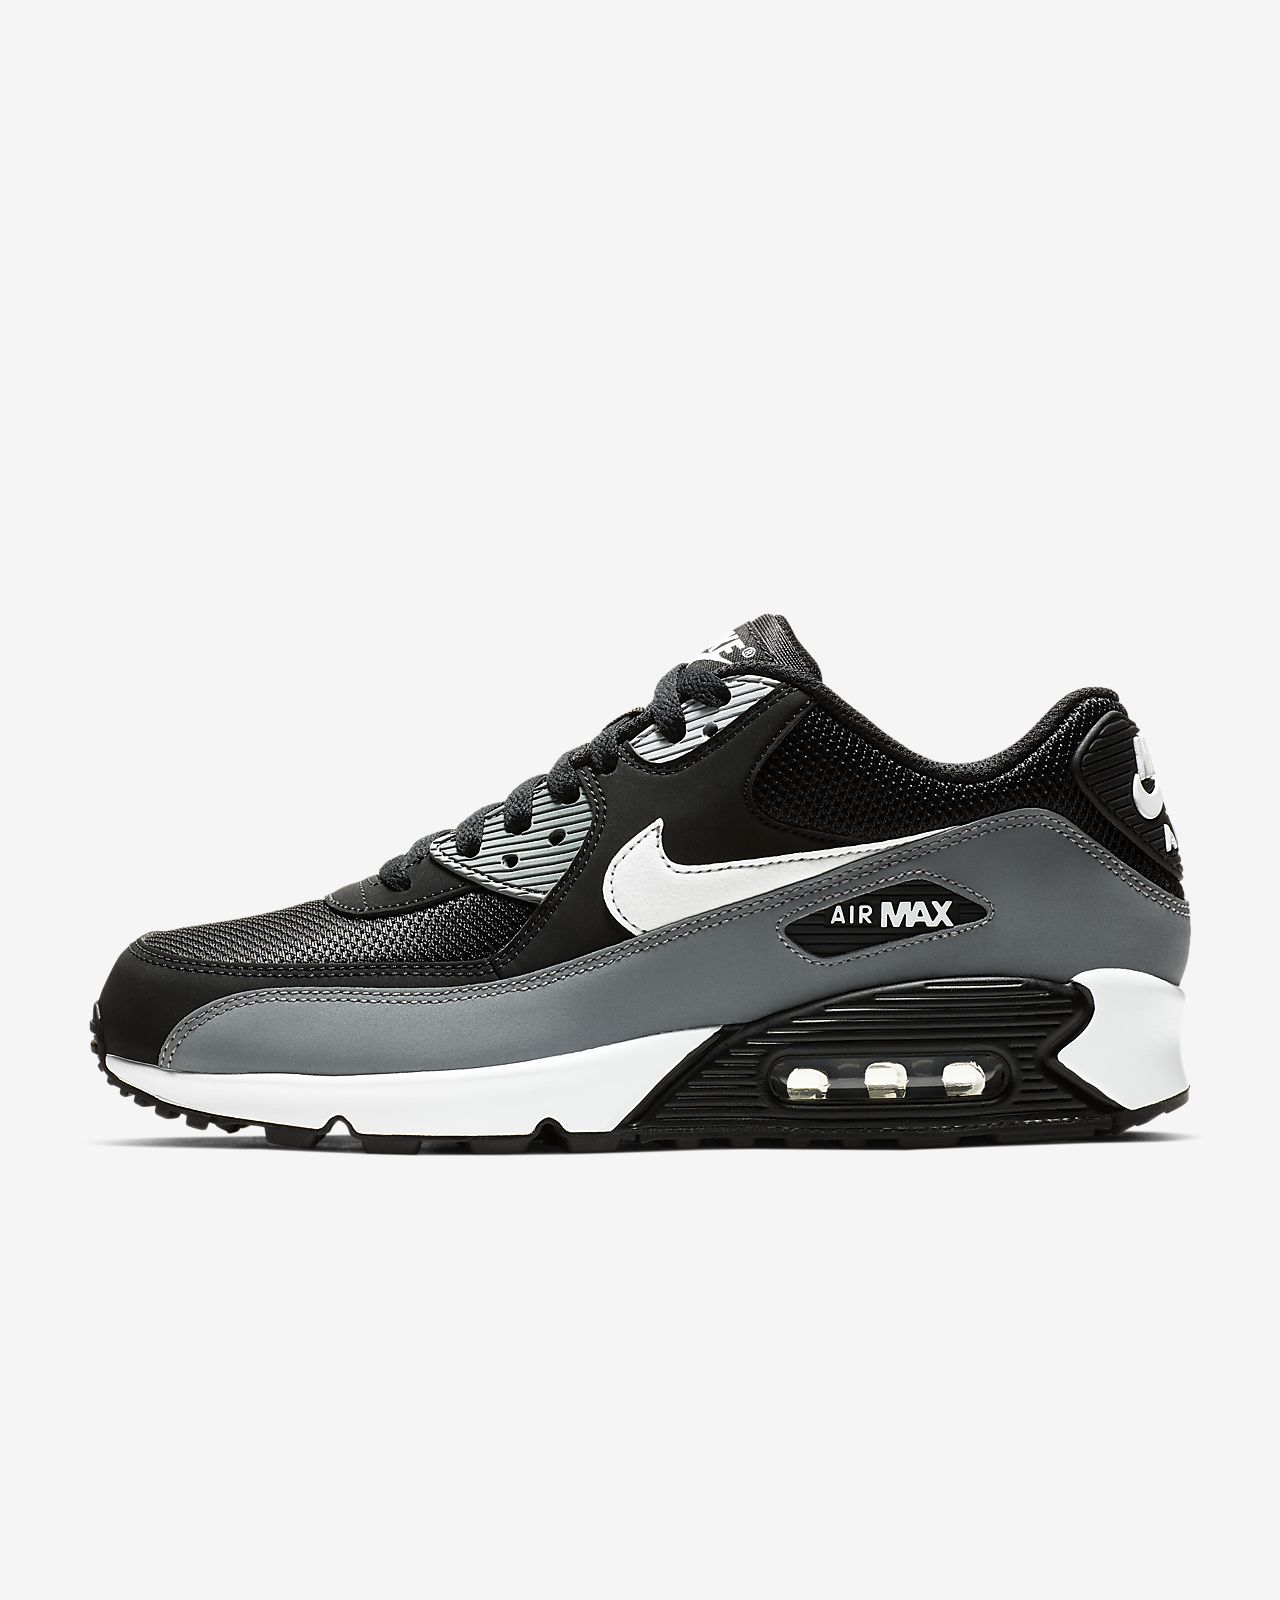 separation shoes bcfa5 78935 ... Nike Air Max 90 Essential Men s Shoe